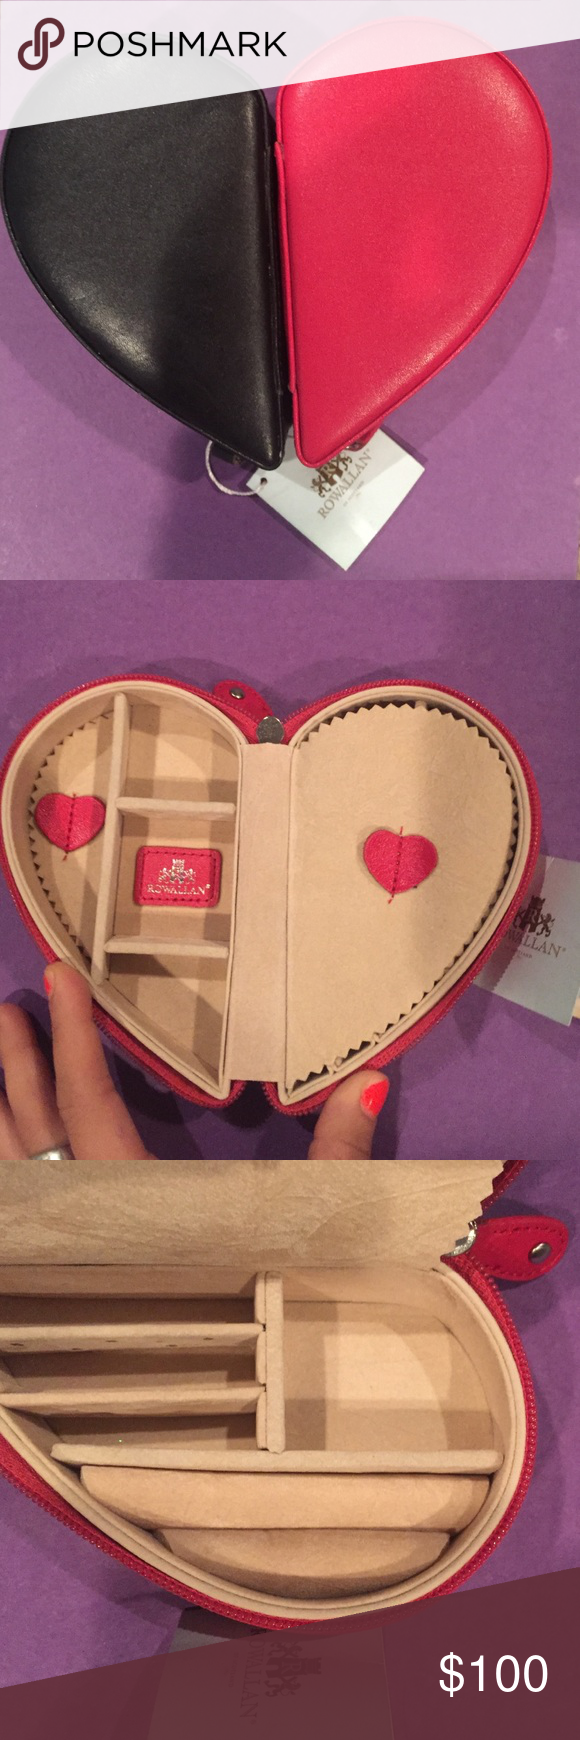 Rowallan Dual Leather Heart Shaped Jewelry Cases *NWT*! Rowallan of Scotland Genuine Leather Dual zipper-shut, Heart Shaped Jewelry holders. Great for travel or home storage of precious jewelry. Two halves of the heart magnetize together in the middle ❤️.  Red half on one side has 4 compartments as well as a jewelry polish rag while the other half has 2 long ring placers, and 4 other compartments. Black side of heart is similar but has a 2-stretch band on one side to keep a broach or watch…